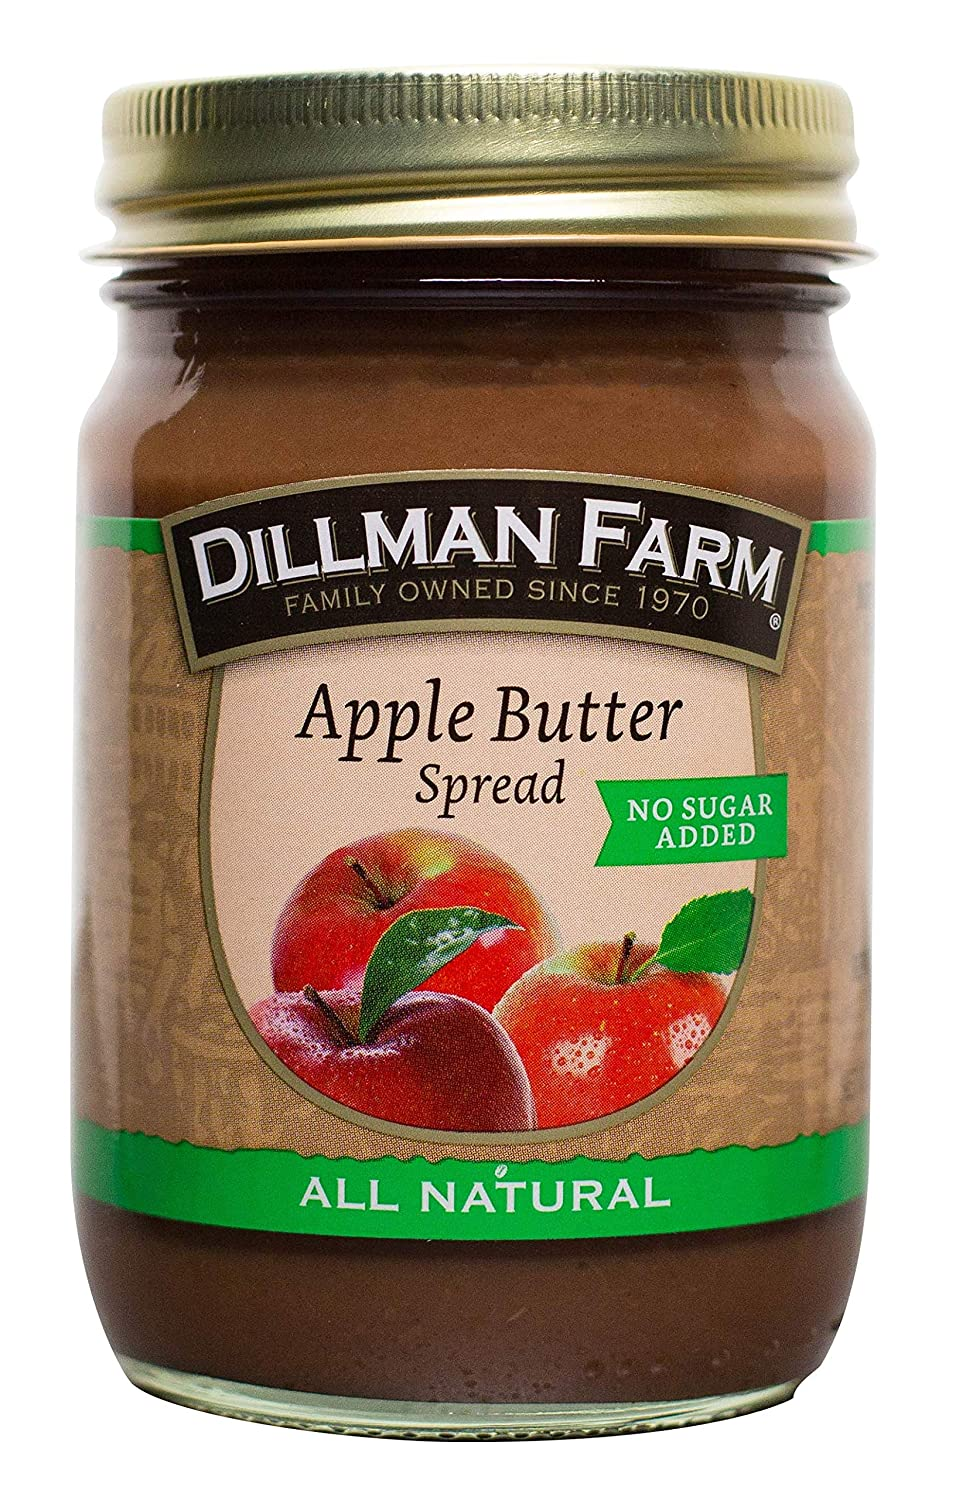 Dillman Farm All Natural No Sugar Added Apple Butter, 13oz (Pack of 6)